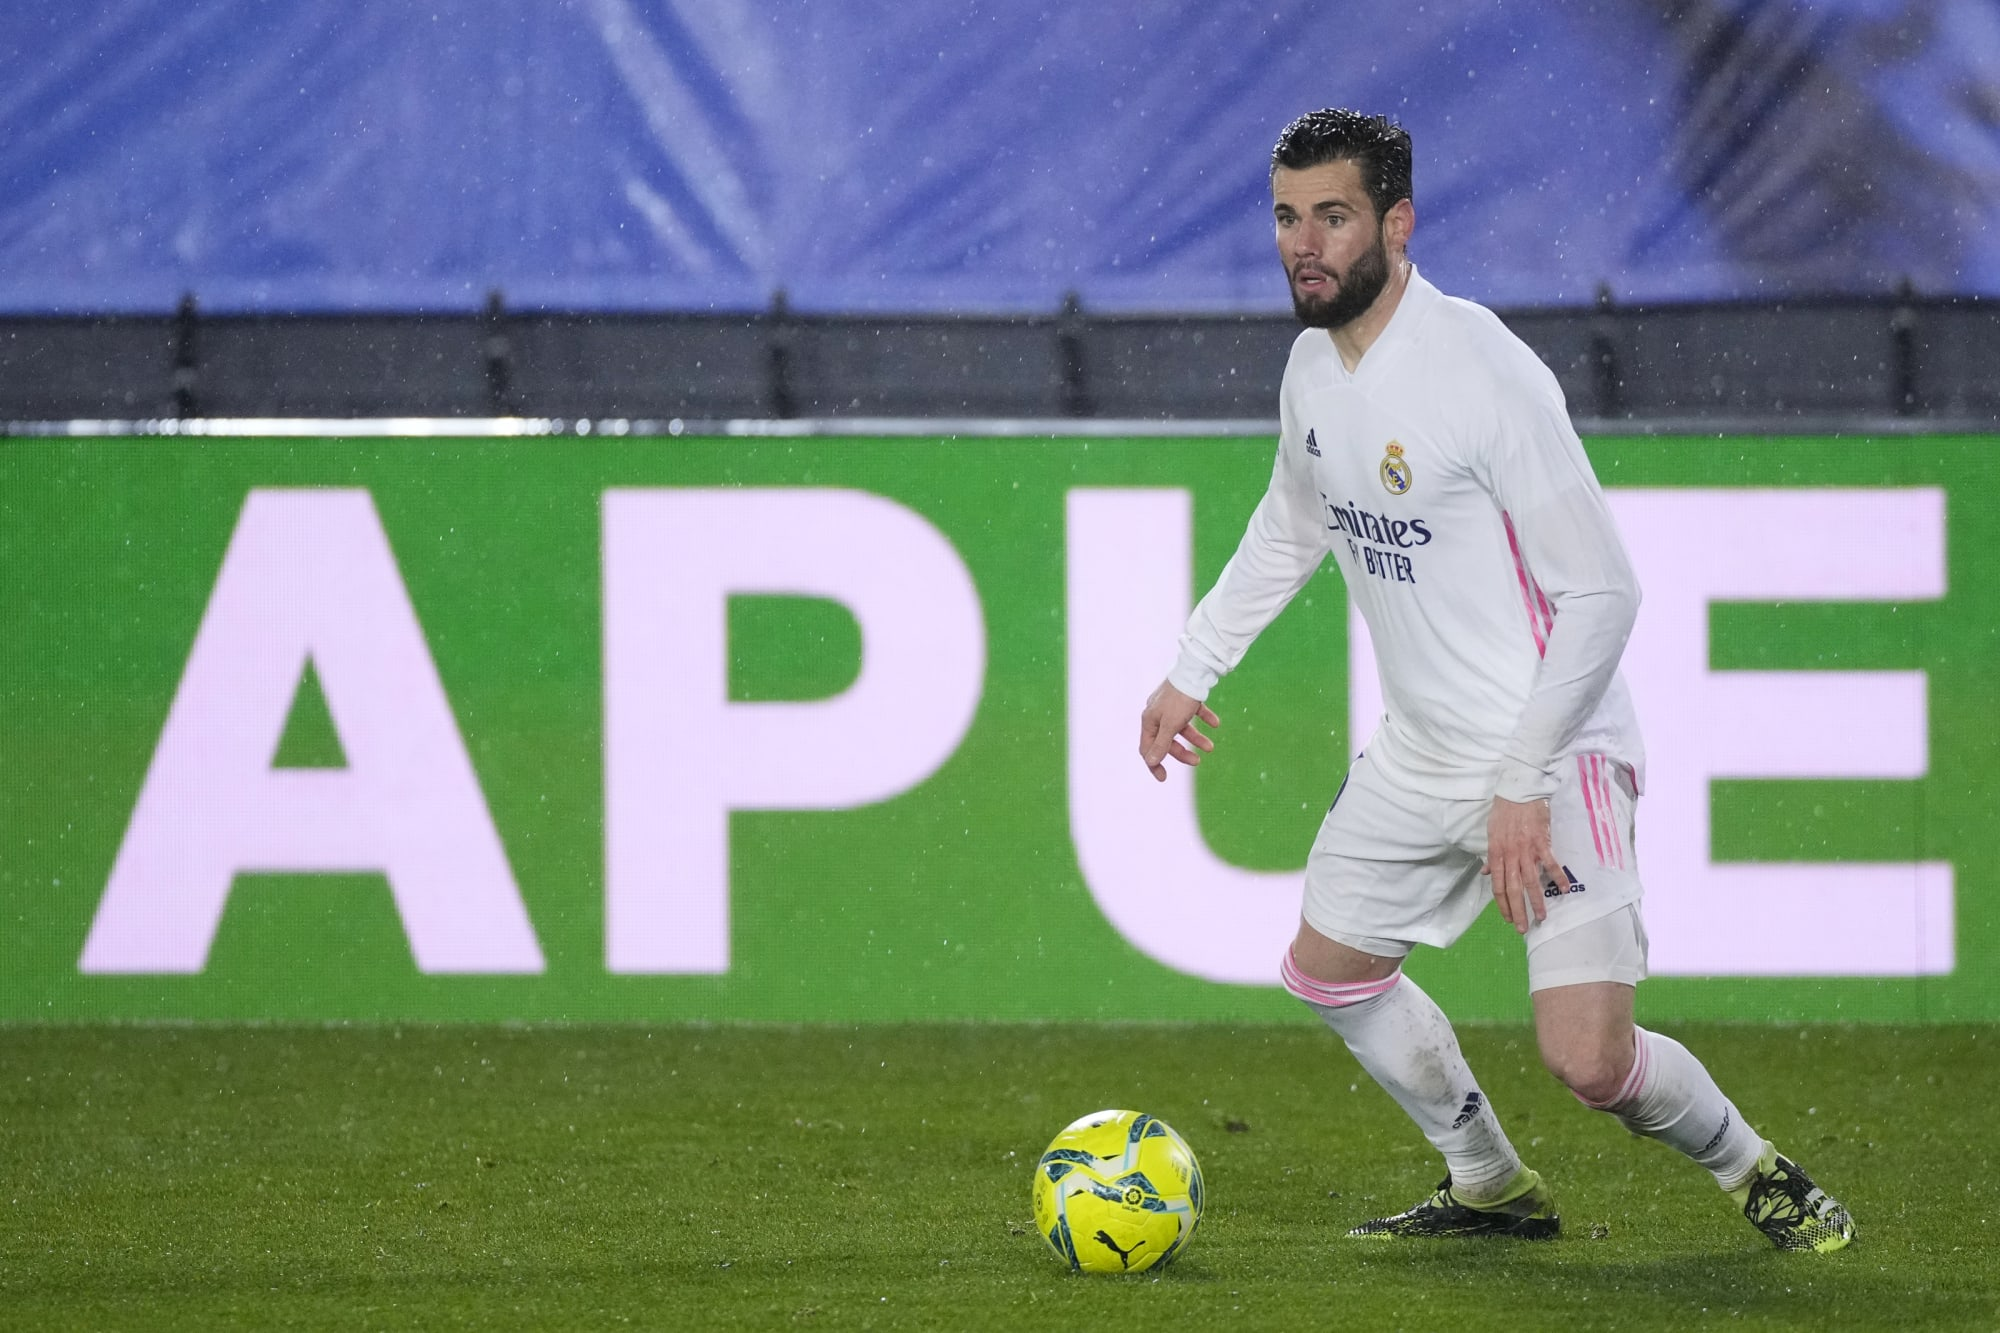 Real Madrid: Nacho has become an important part of the title race